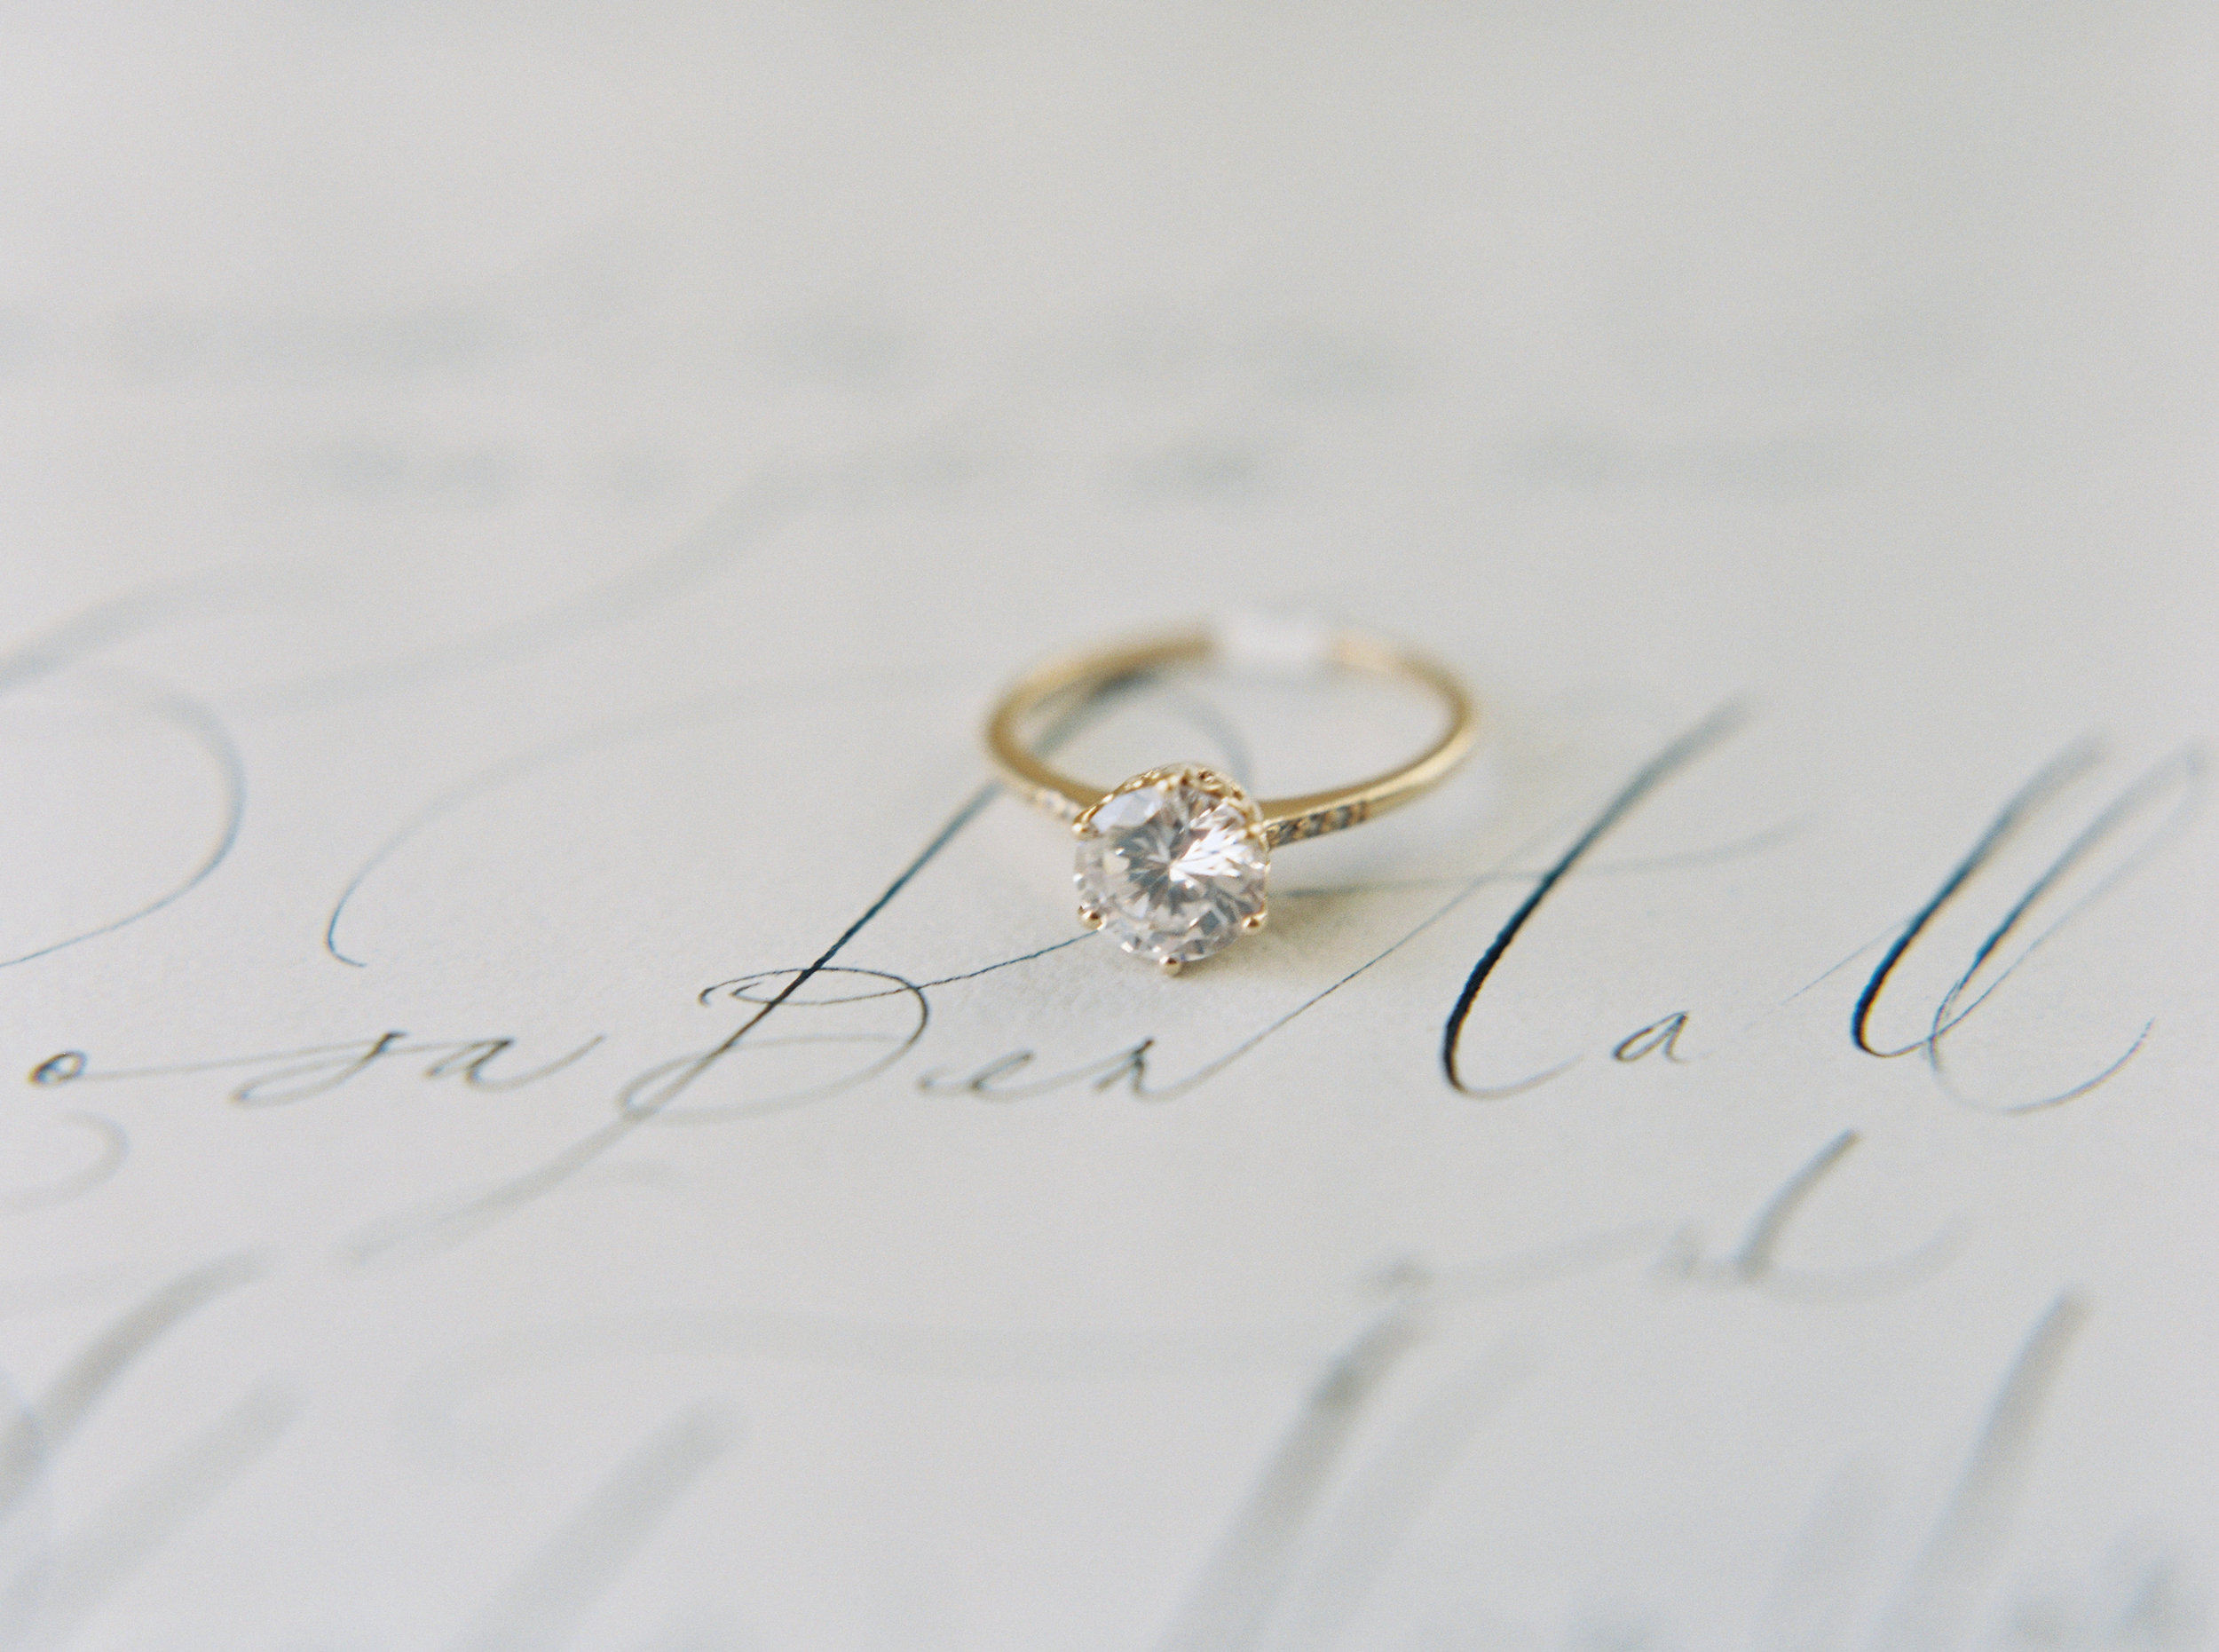 Image by Laura Gordon; Ring by Anna Sheffield